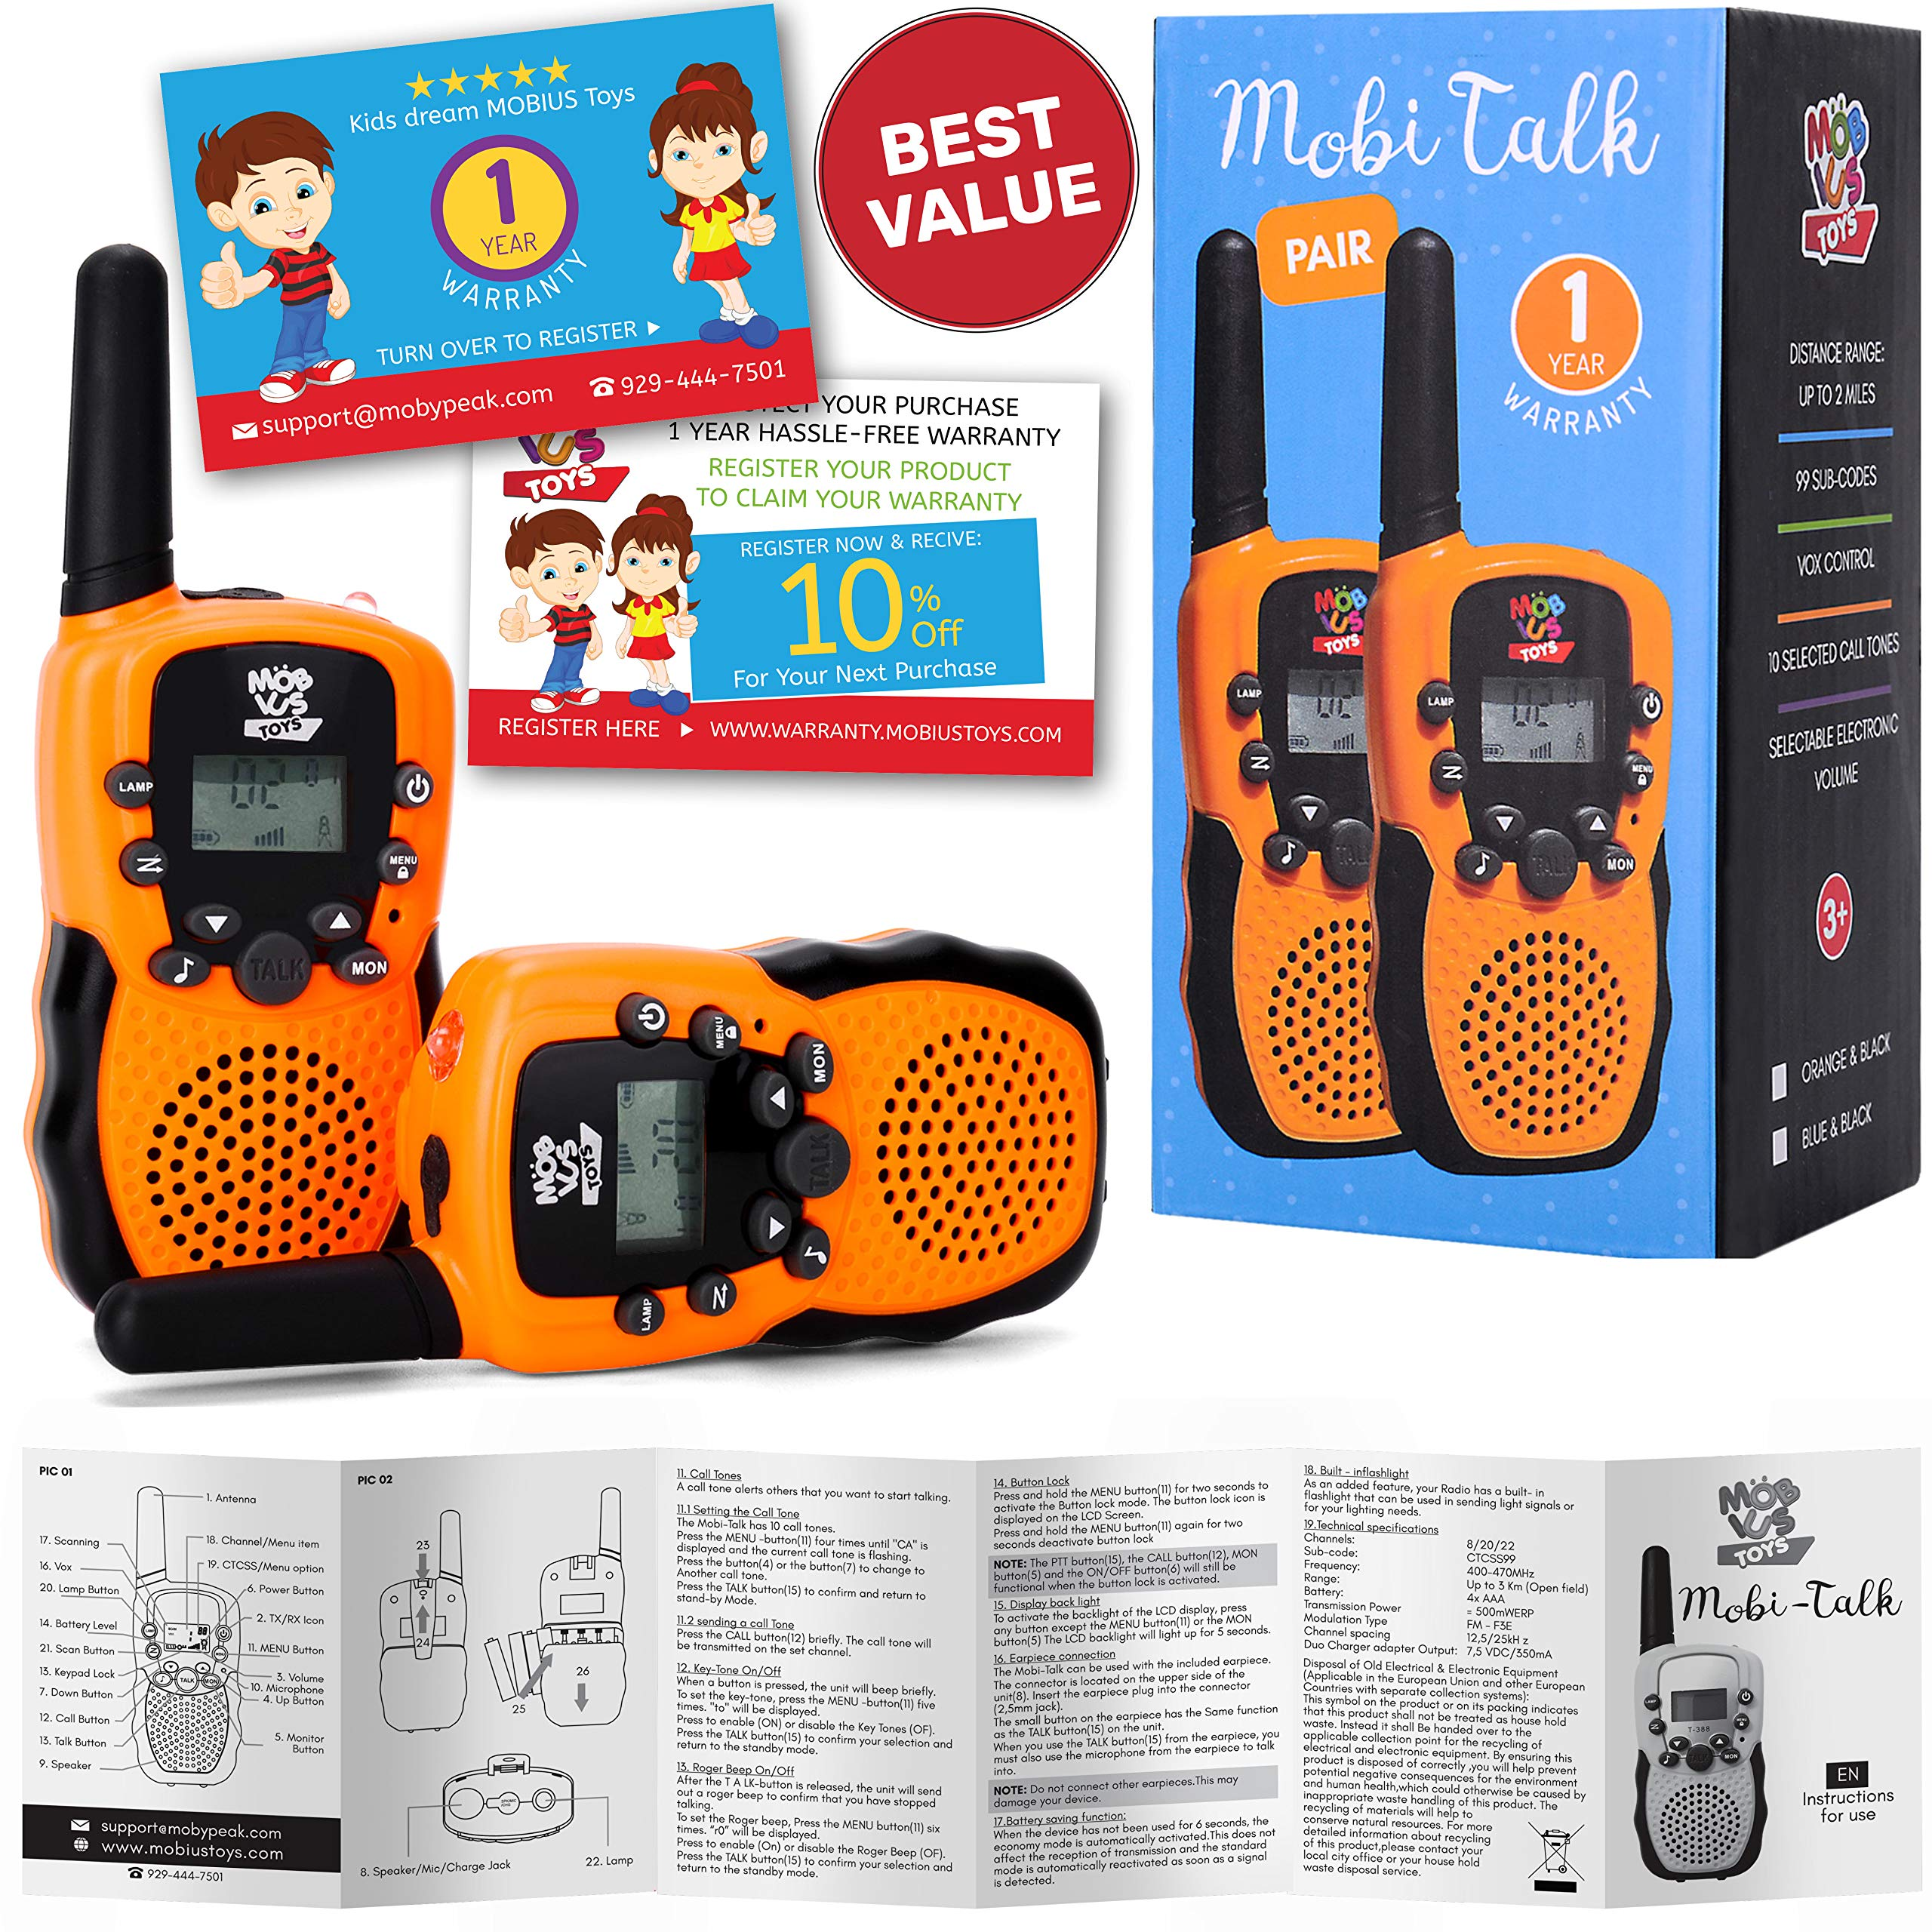 Walkie Talkies for Kids - (Vox Box) Voice Activated Walkie Talkies Toy for Kids, Two Way Radios Pair for Boys & Girls, Limited Edition Color Best Gift Long Range 3+ Miles Children's Walkie Talkie Set